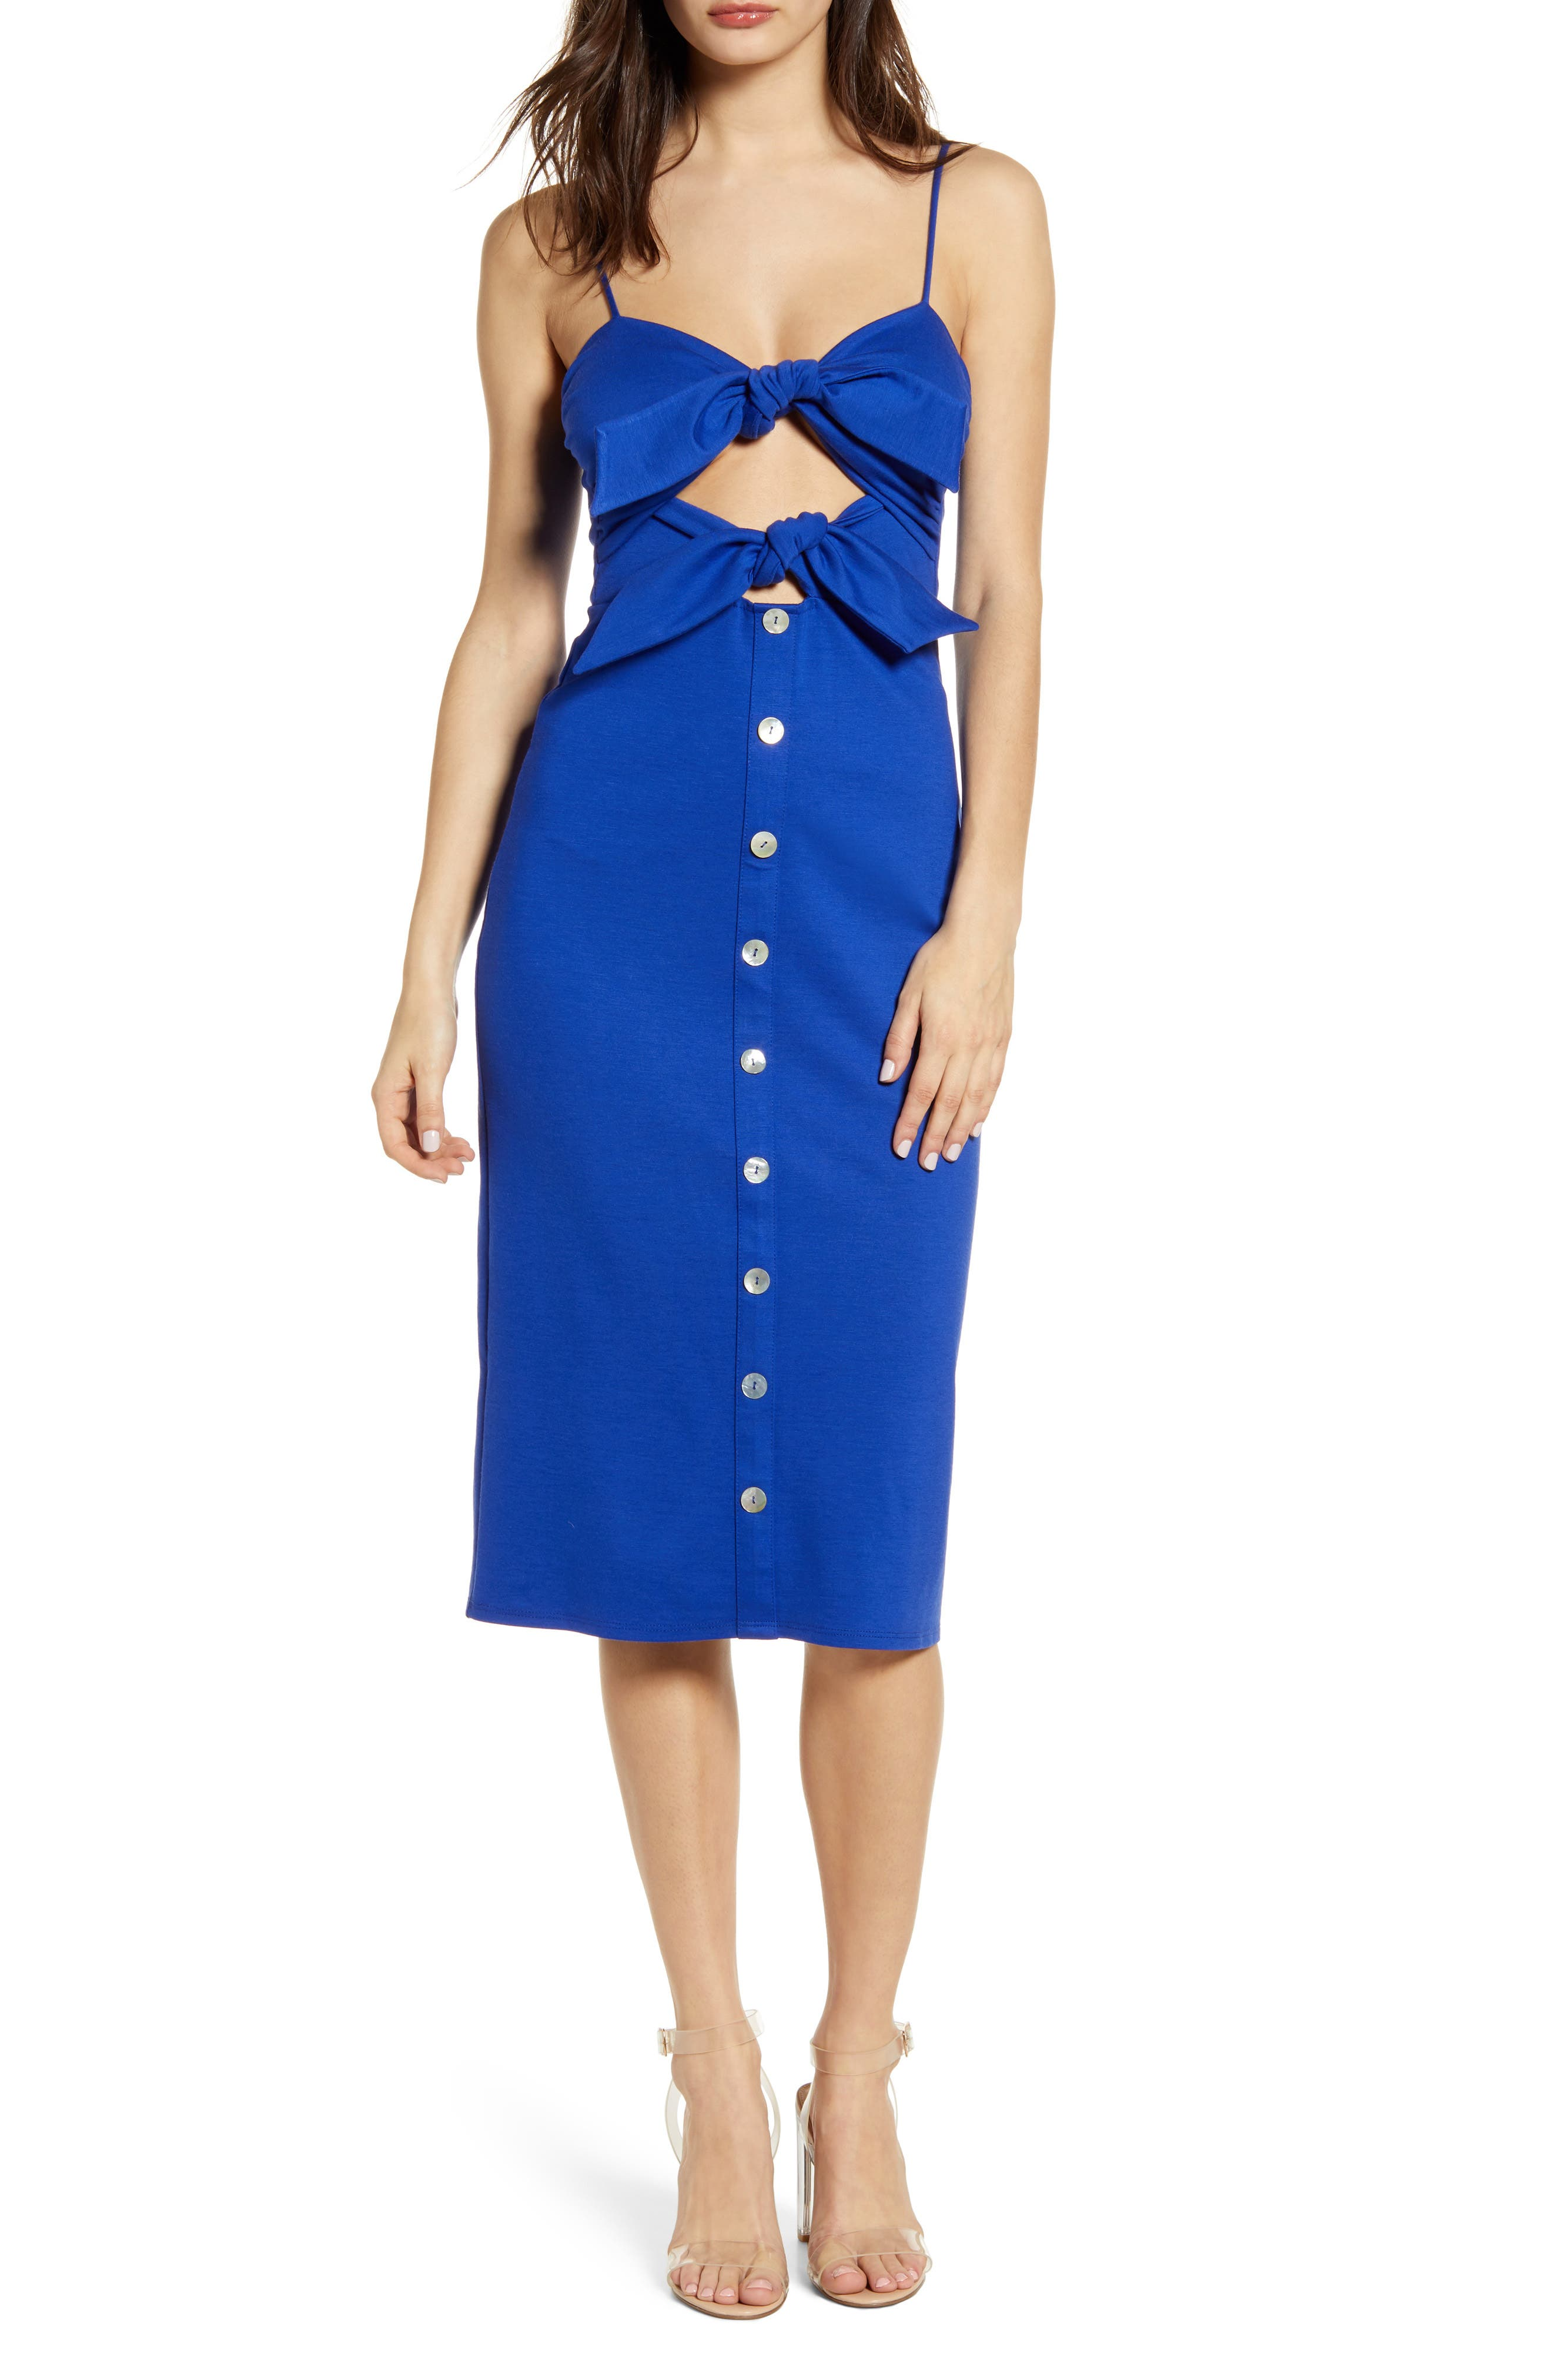 4Si3Nna Double Front Bow Button Front Midi Dress, Blue